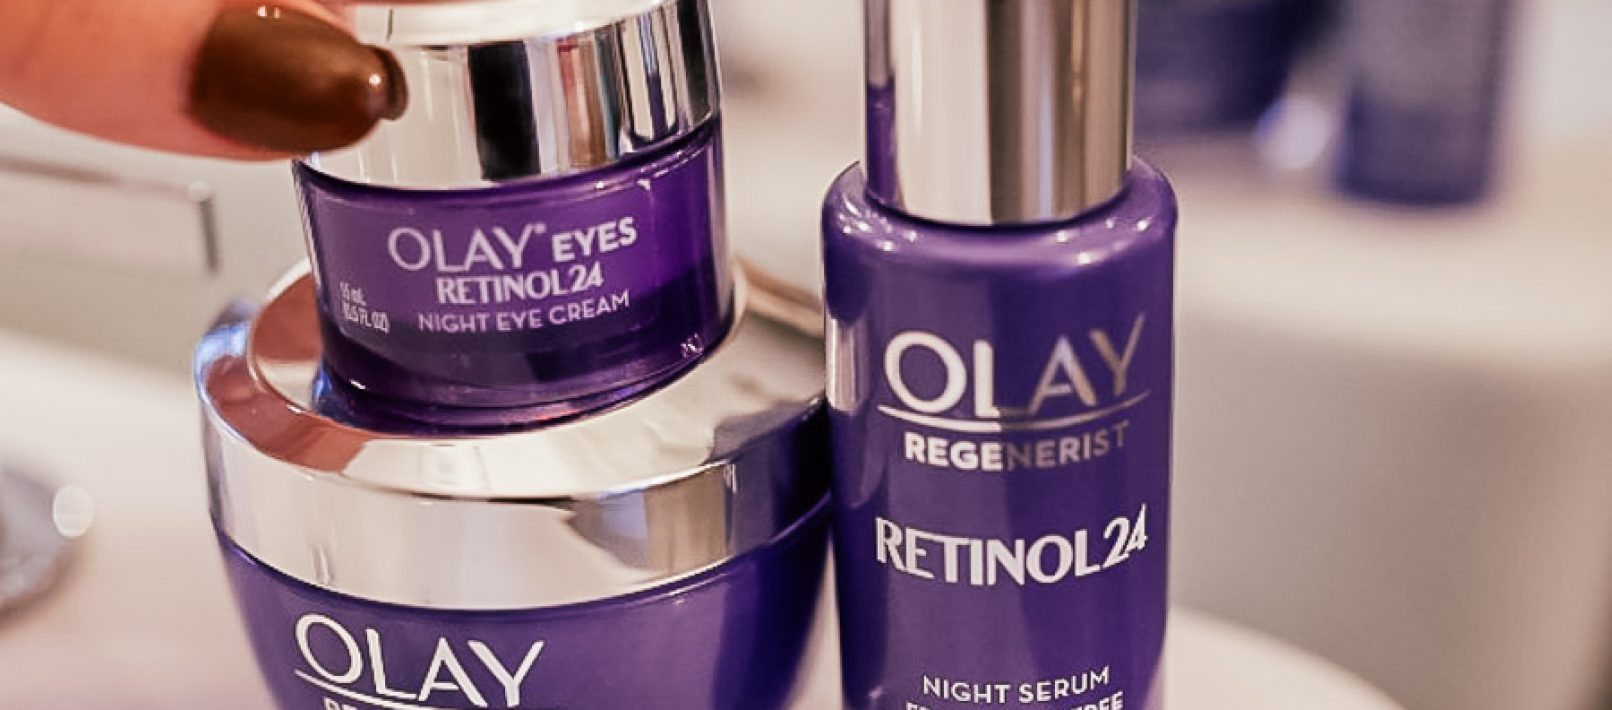 Olay Regenerist Retinol24 My Honest Review Lauren Kay Sims